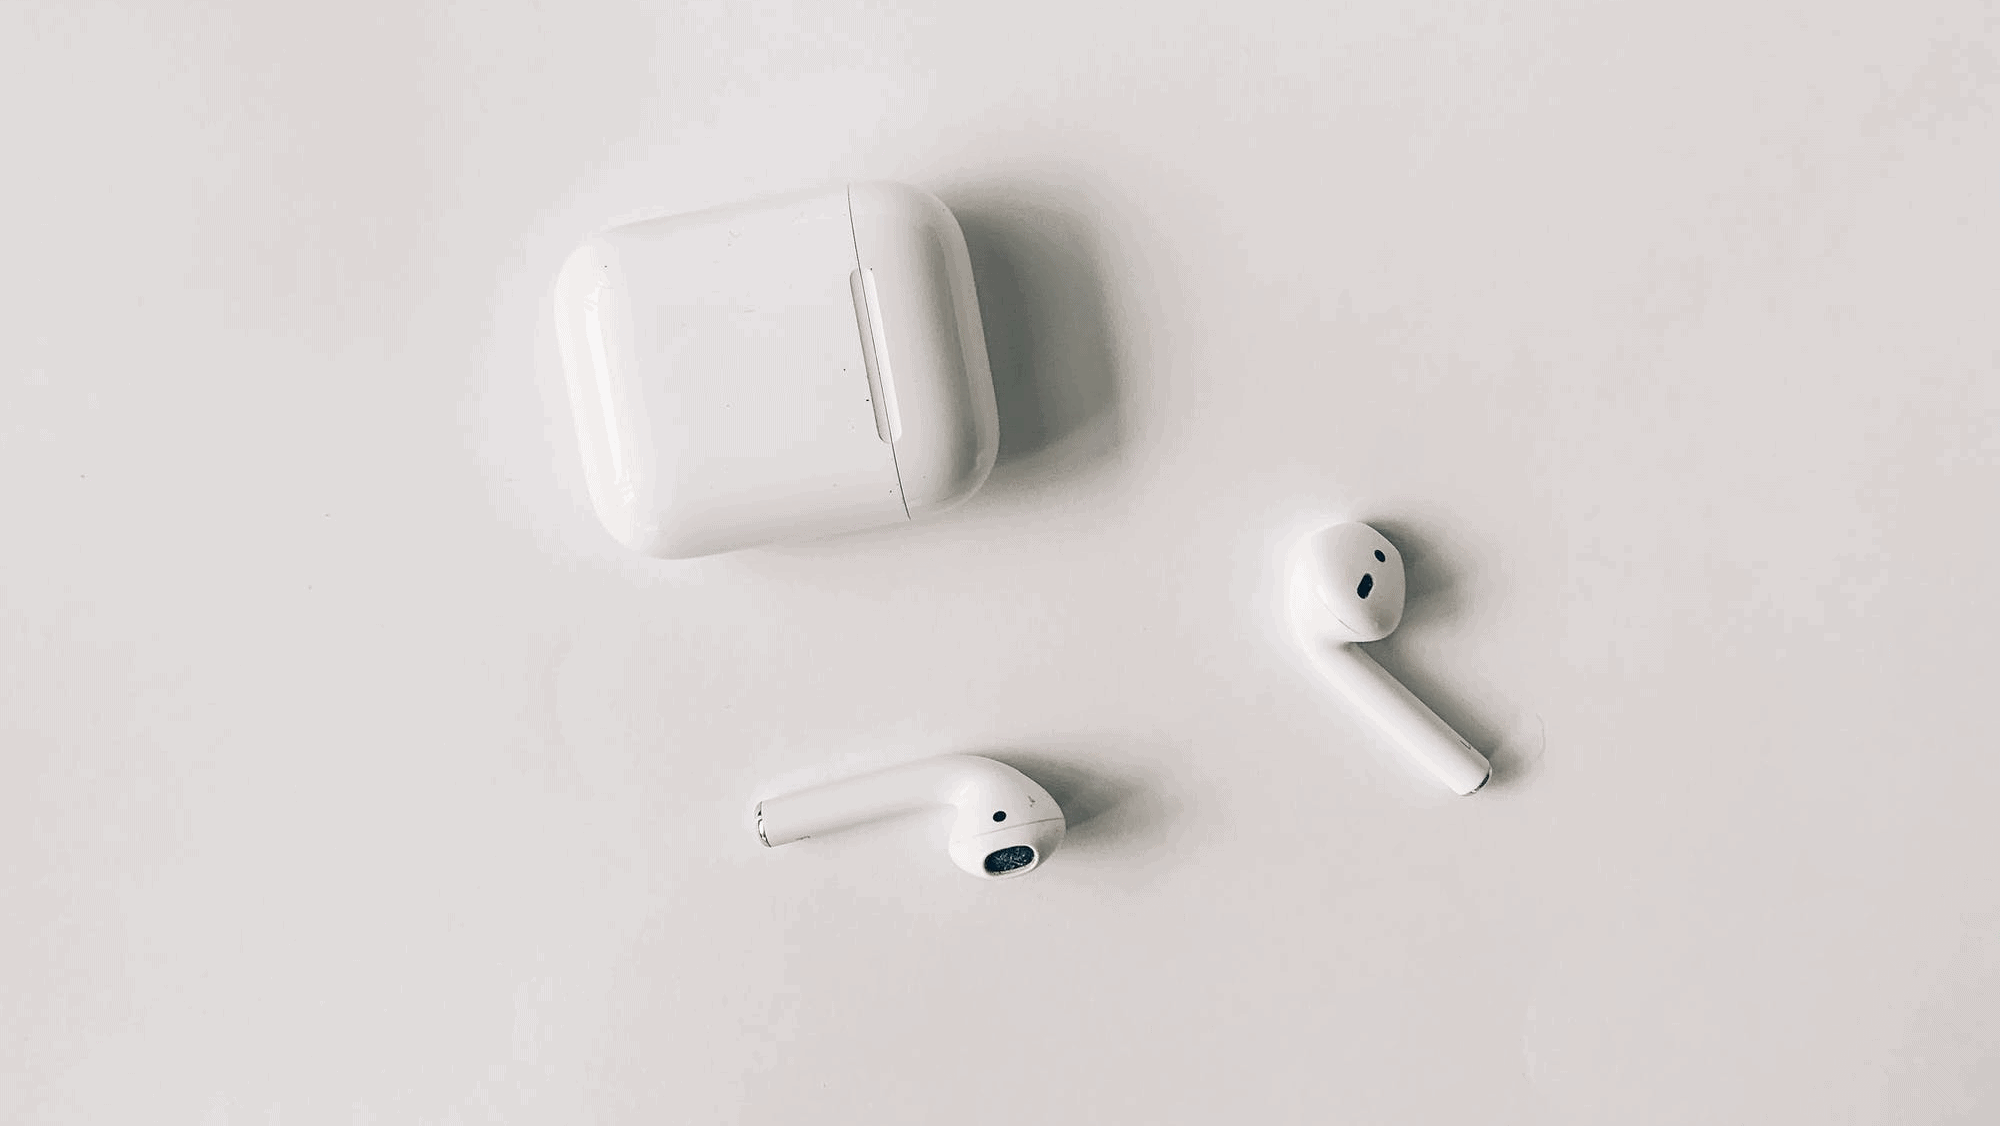 airpods (2nd generation)